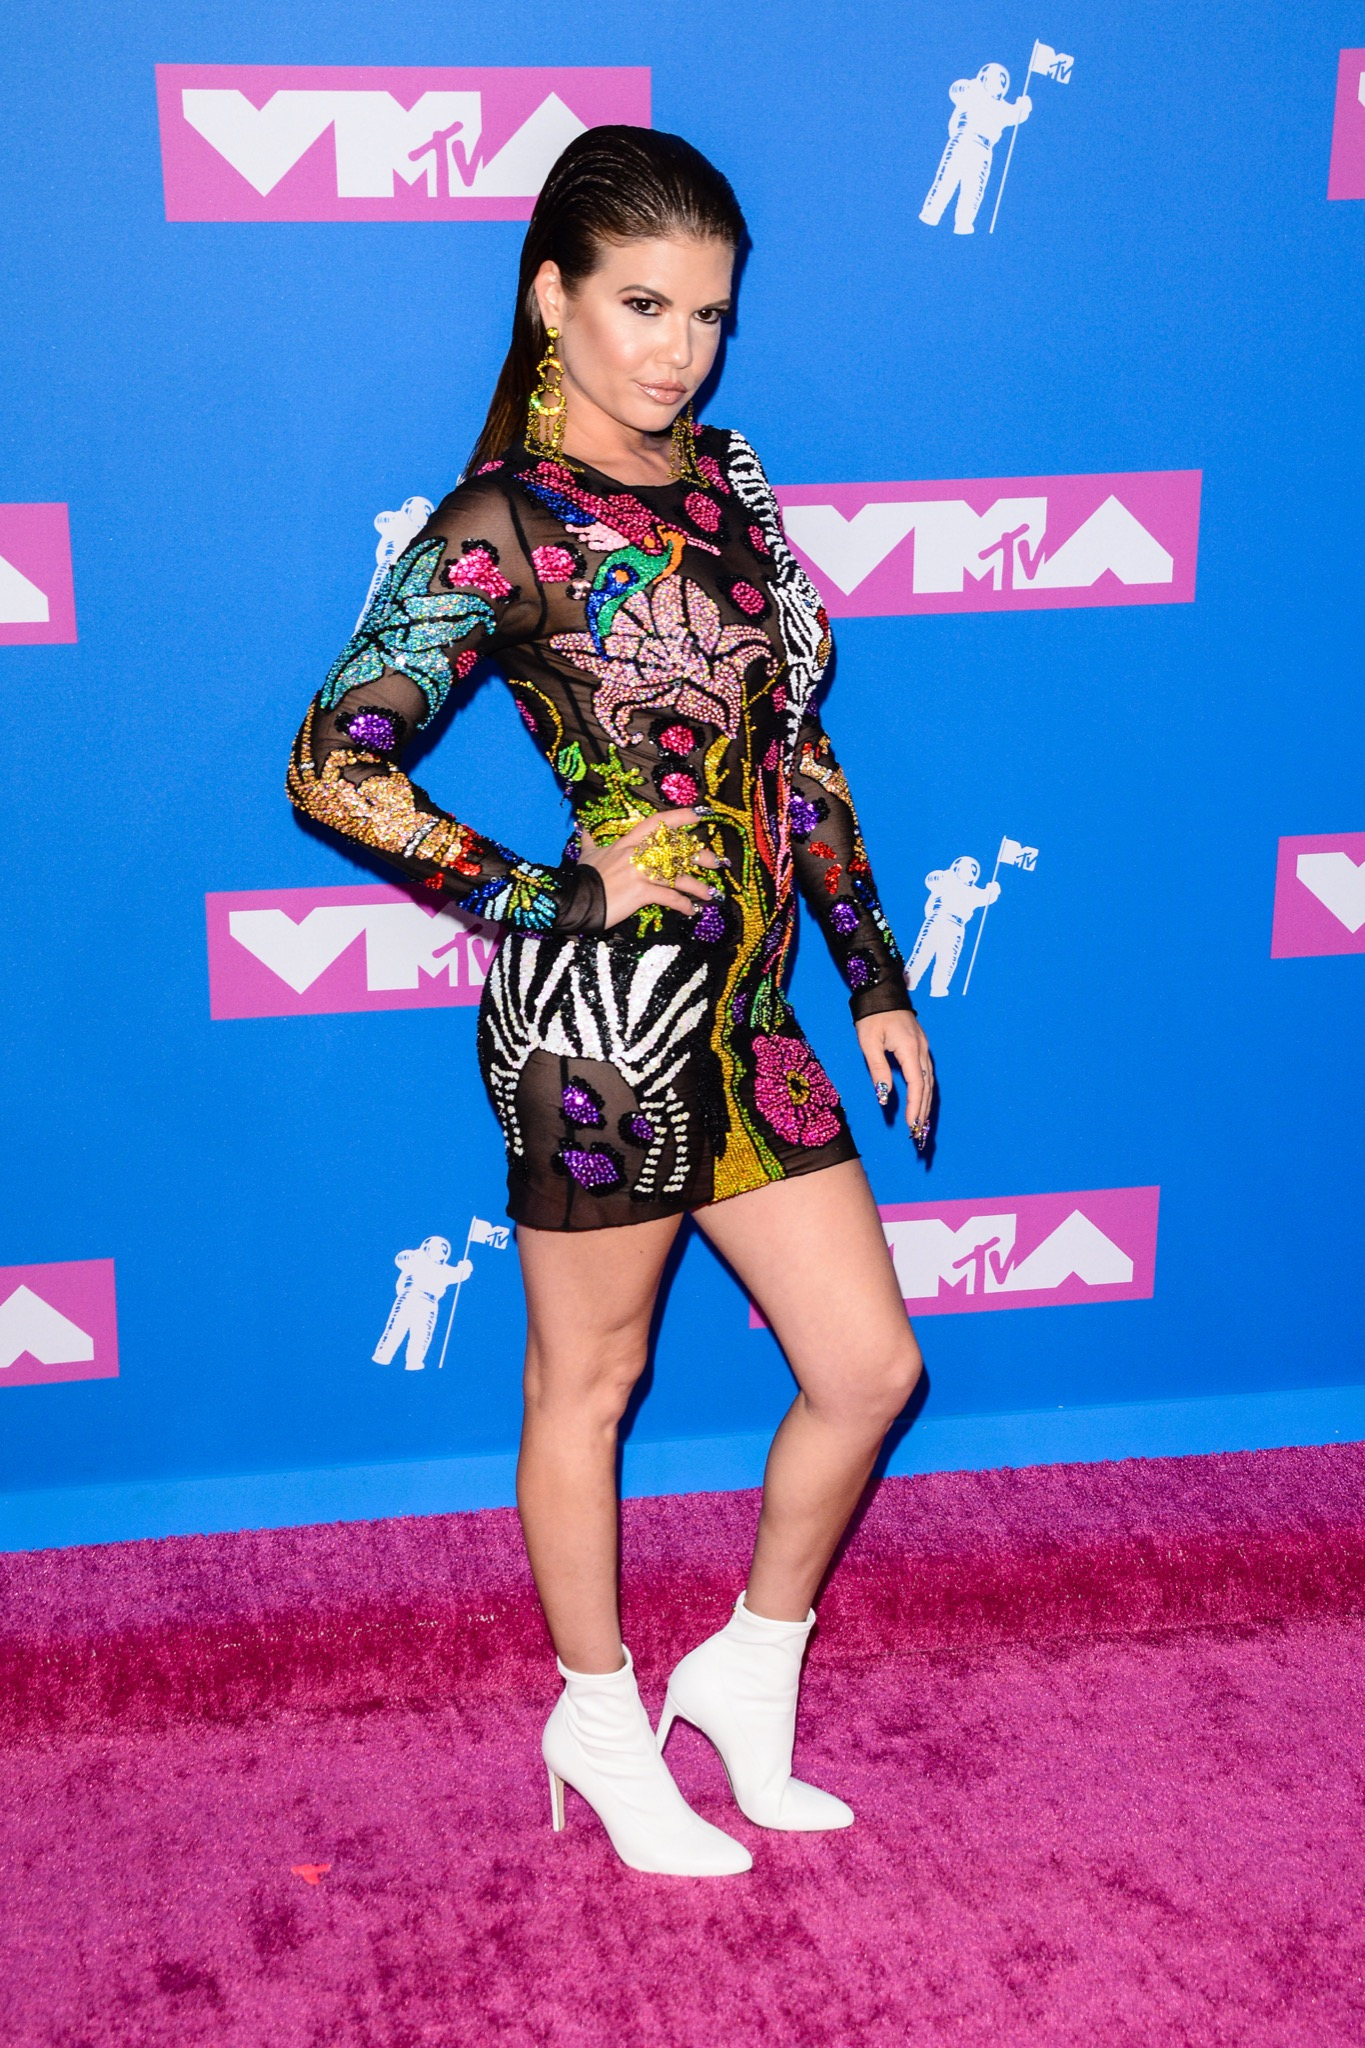 2018 MTV Video Music Awards - Arrivals Featuring: Chanel West Coast Where: NYC, New York, United States When: 20 Aug 2018 Credit: Patricia Schlein/WENN.com